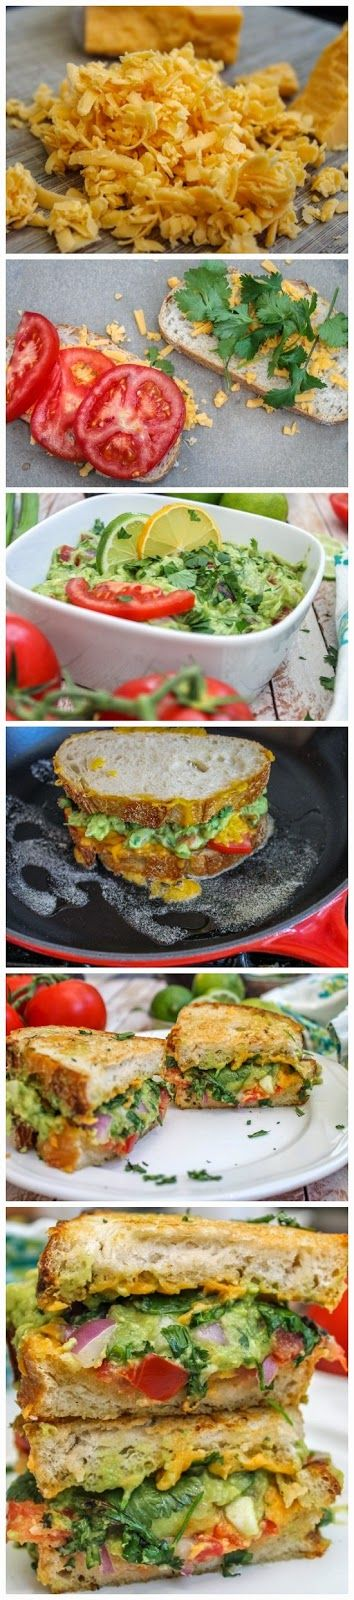 Guacamole Grilled Cheese Sandwich | Delicious Food! | Pinterest